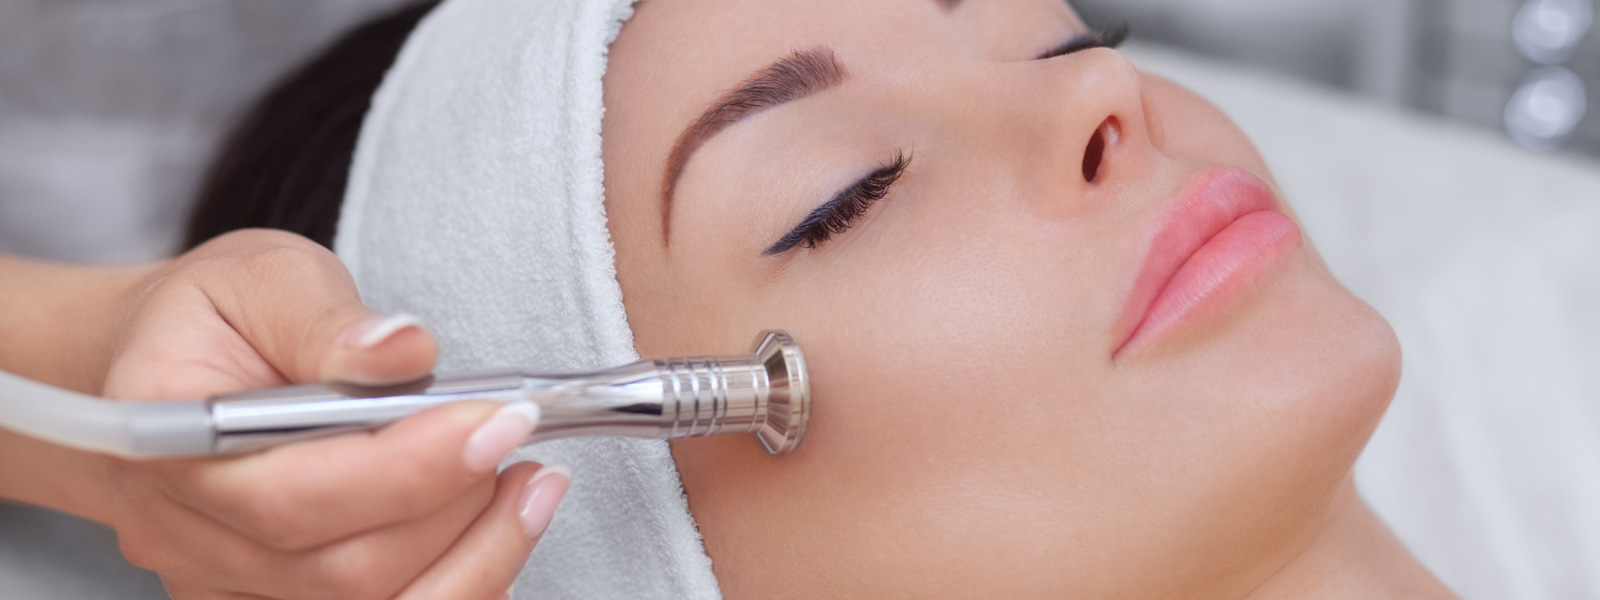 A Woman Having Microdermabrasion Treatment